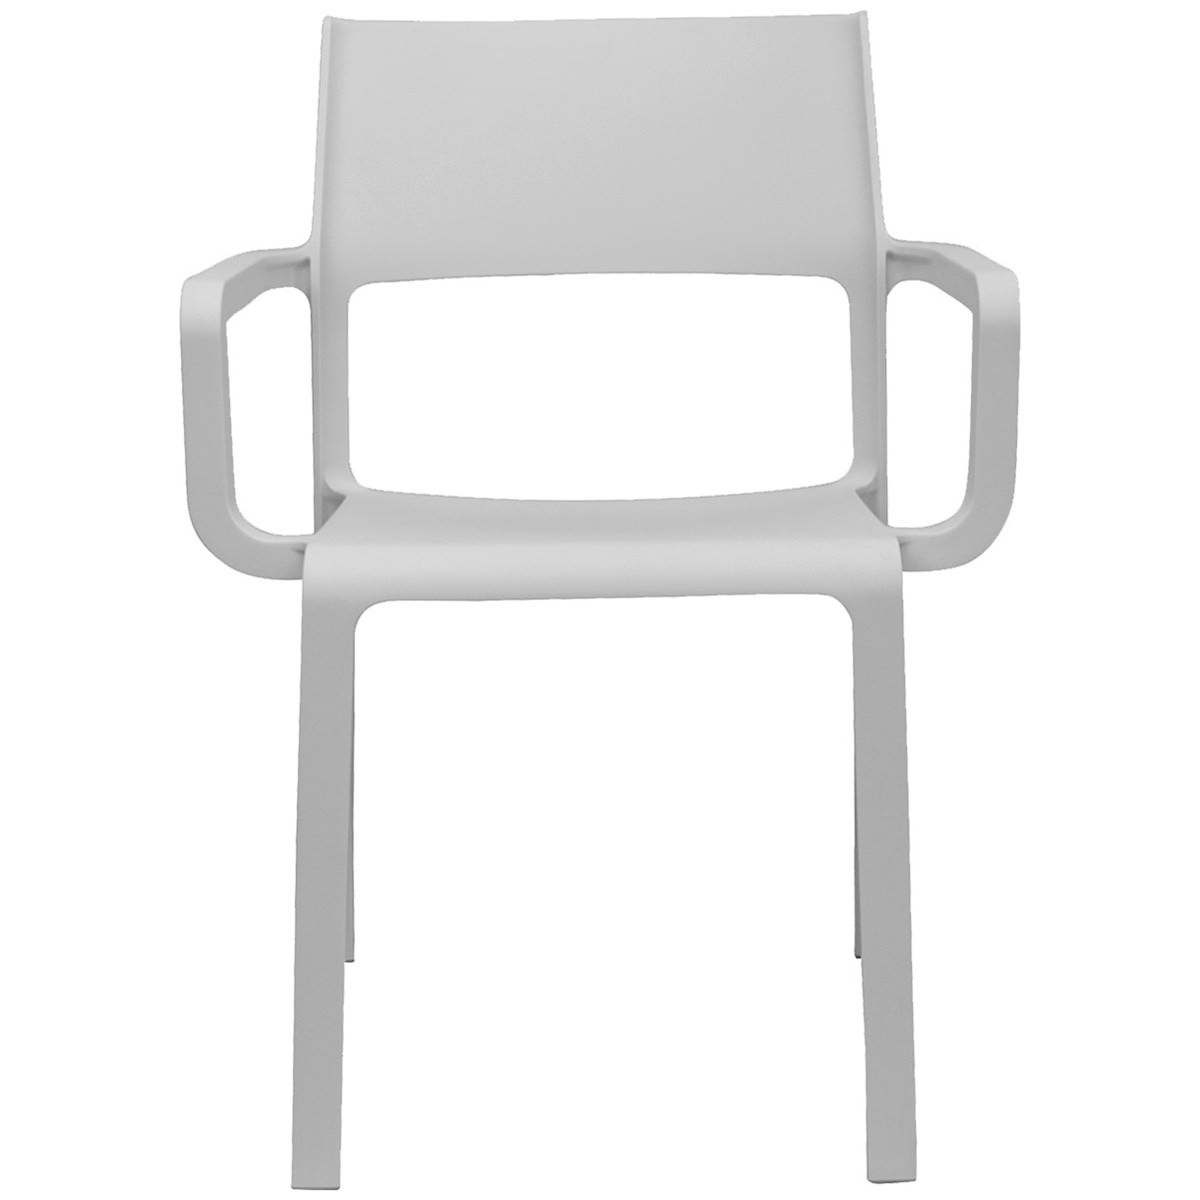 Trill Italian Made Commercial Grade Indoor / Outdoor Dining Armchair, White